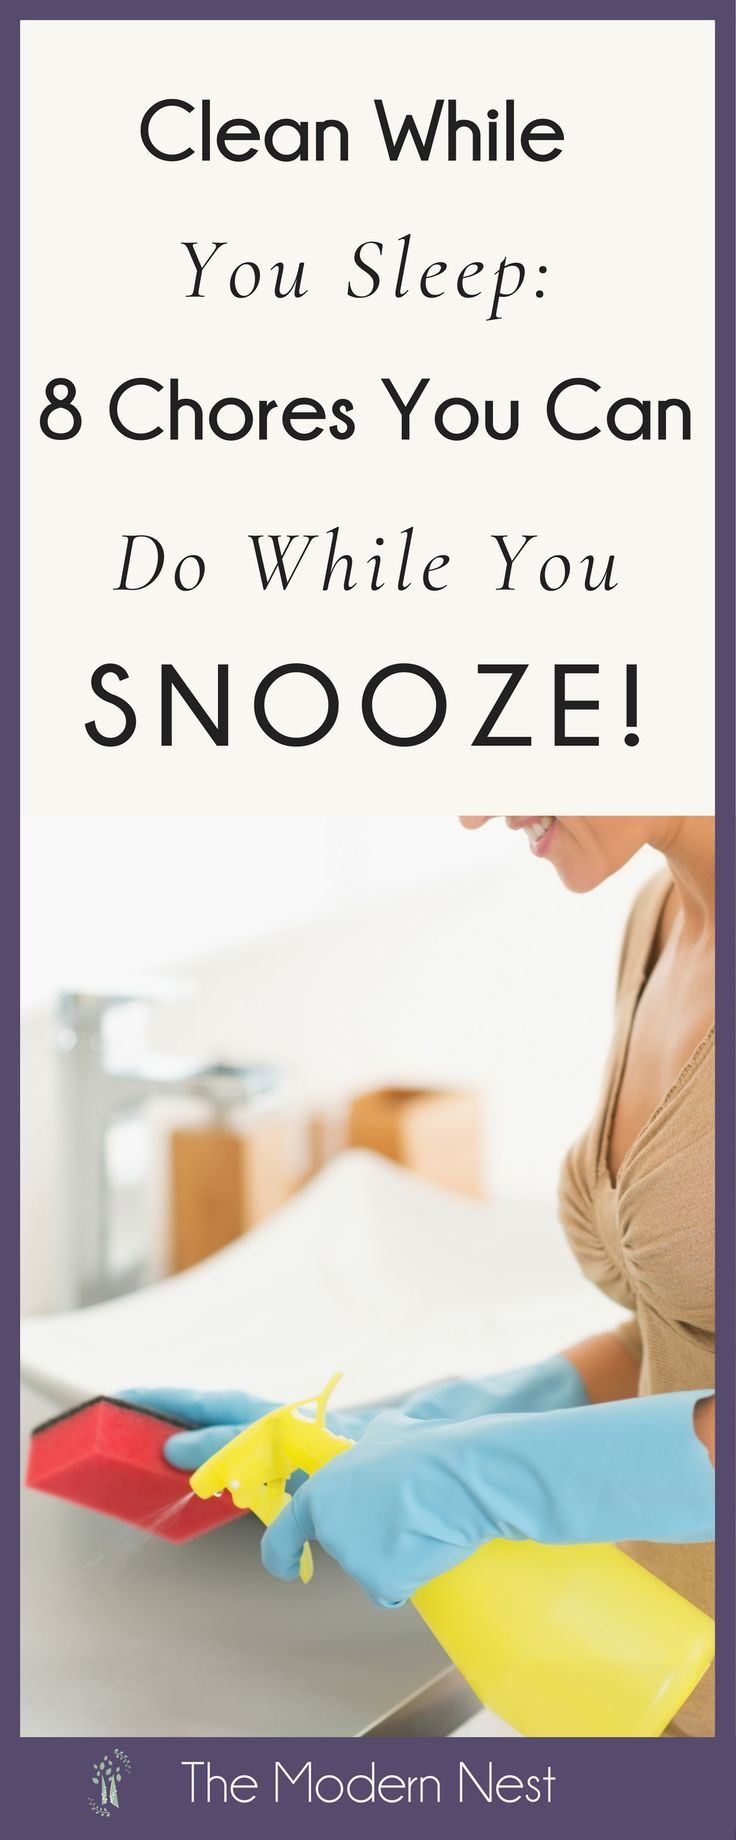 Want to learn how to clean while you sleep? If you're looking for ways to do your housework more efficiently, try these eight chores while you snooze! Read all the tips at https://www.themodernnestblog.com/archives/1941